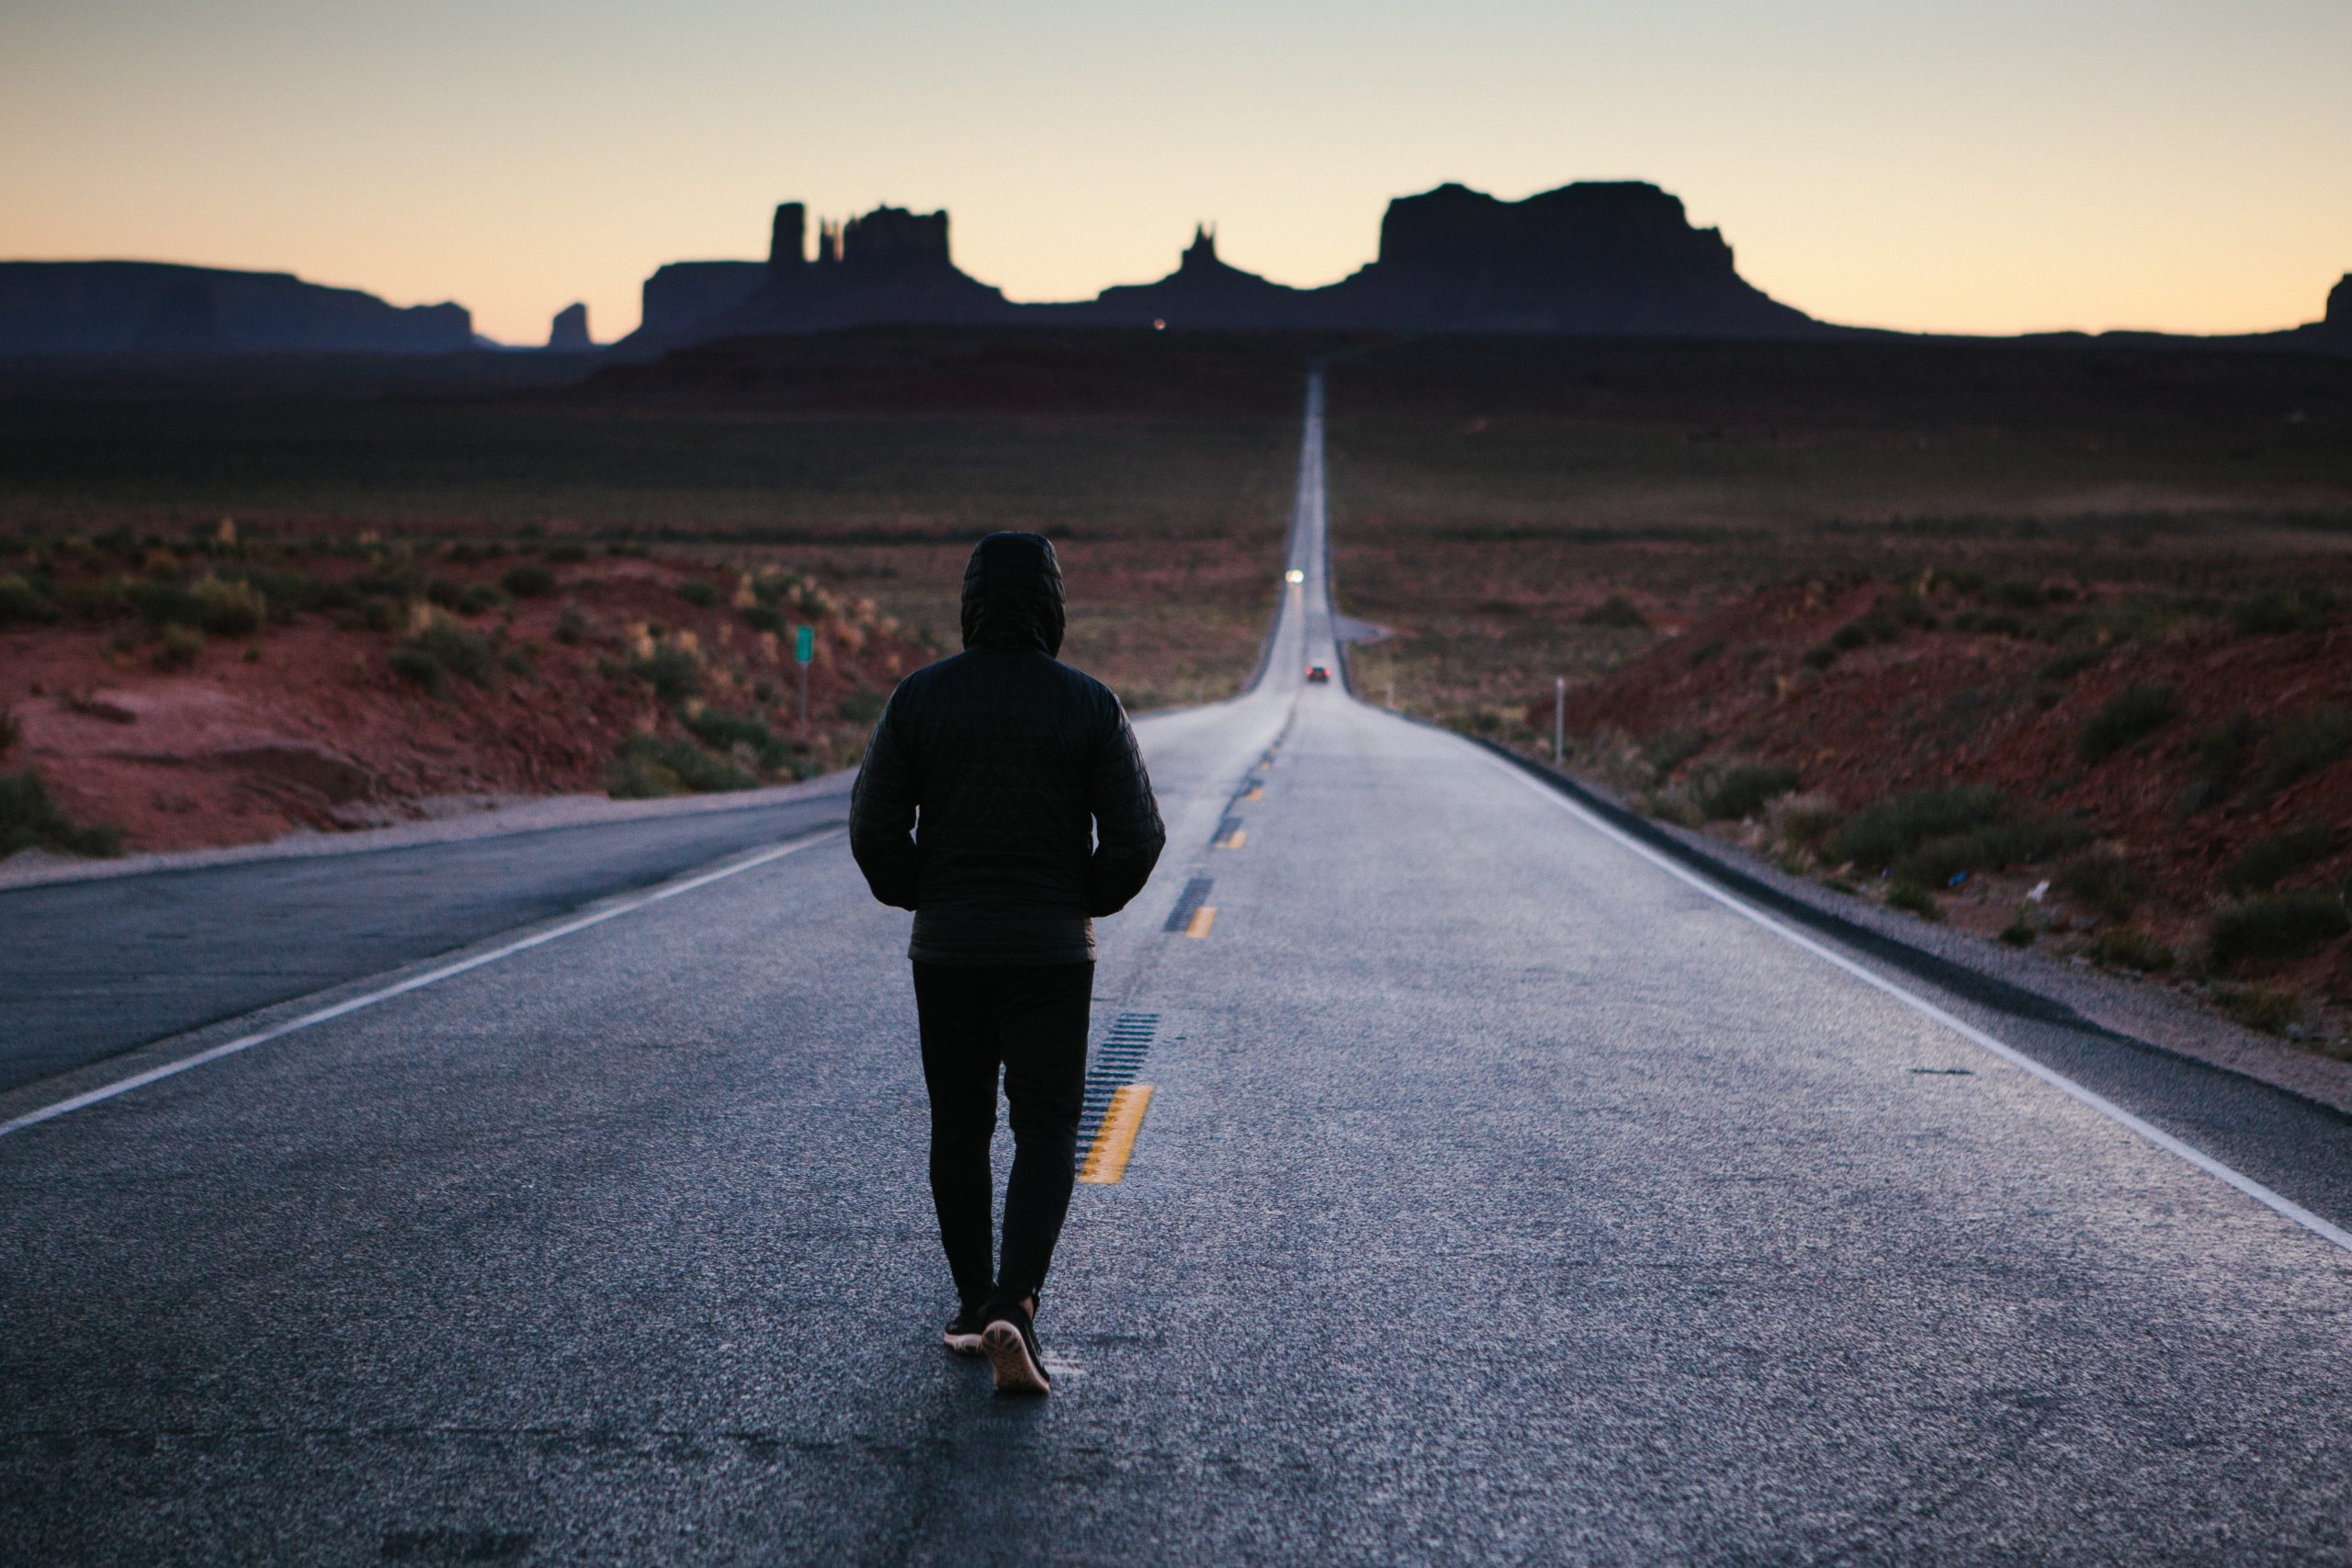 person walking in the center of the road